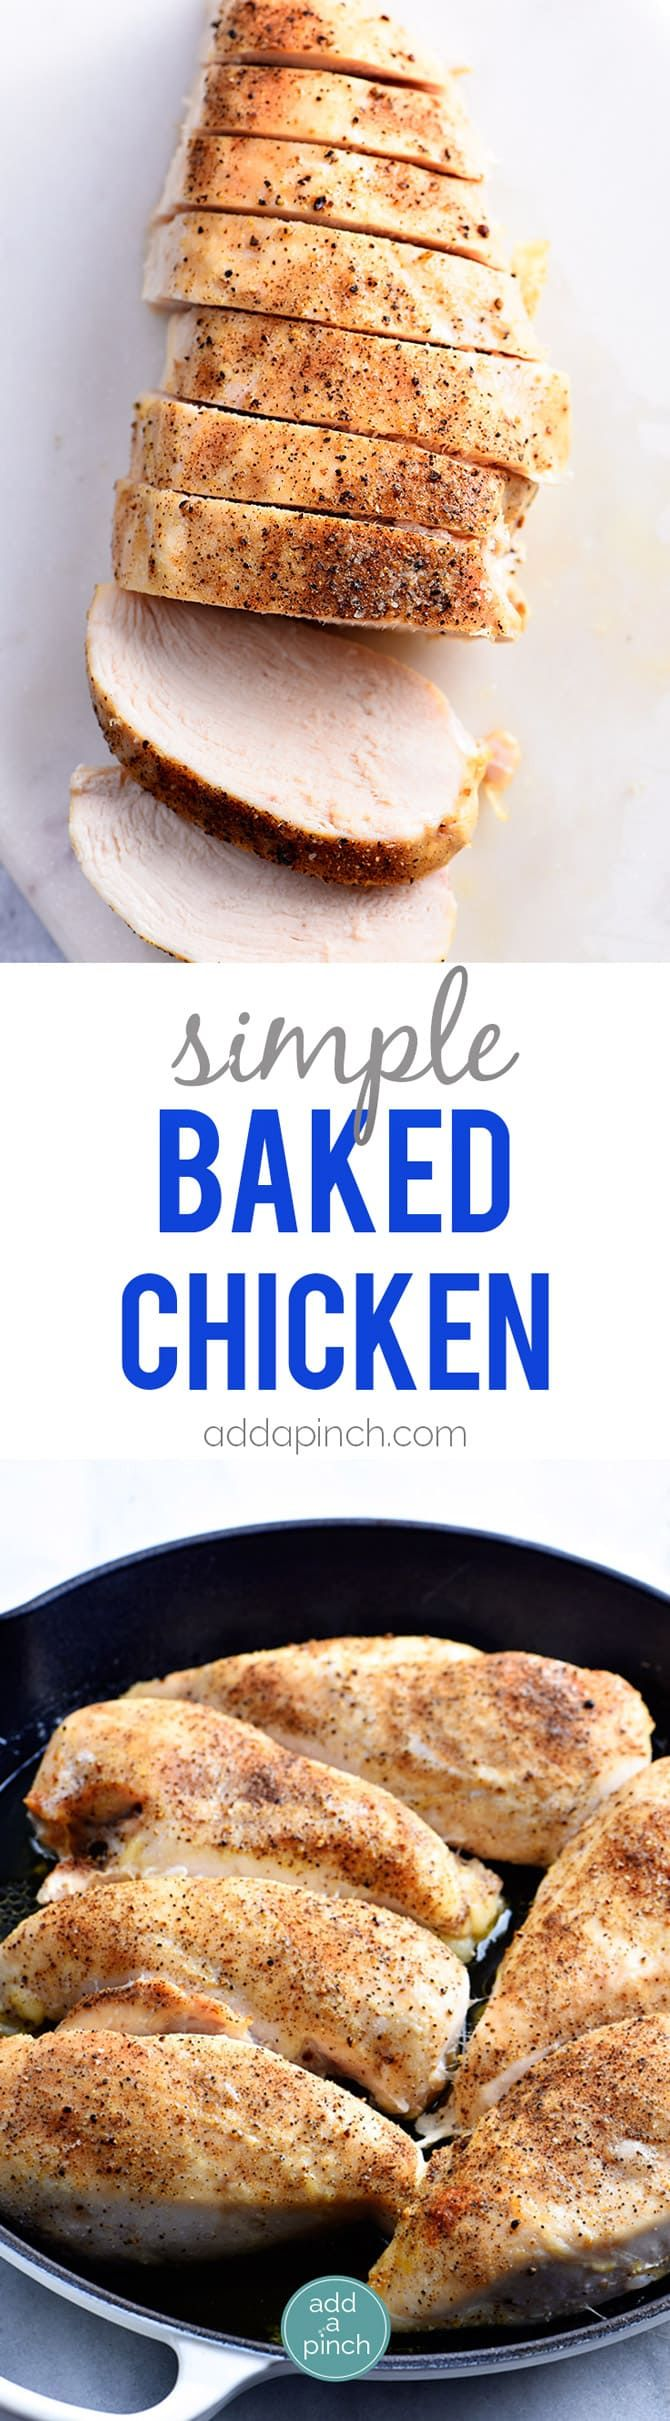 Simple Baked Chicken Breast Recipe - Learning how to make baked chicken breast just got simple with this foolproof recipe. Ready and on the table in less than 30 minutes, but perfect to make-ahead for busy weeknights, too! // addapinch.com